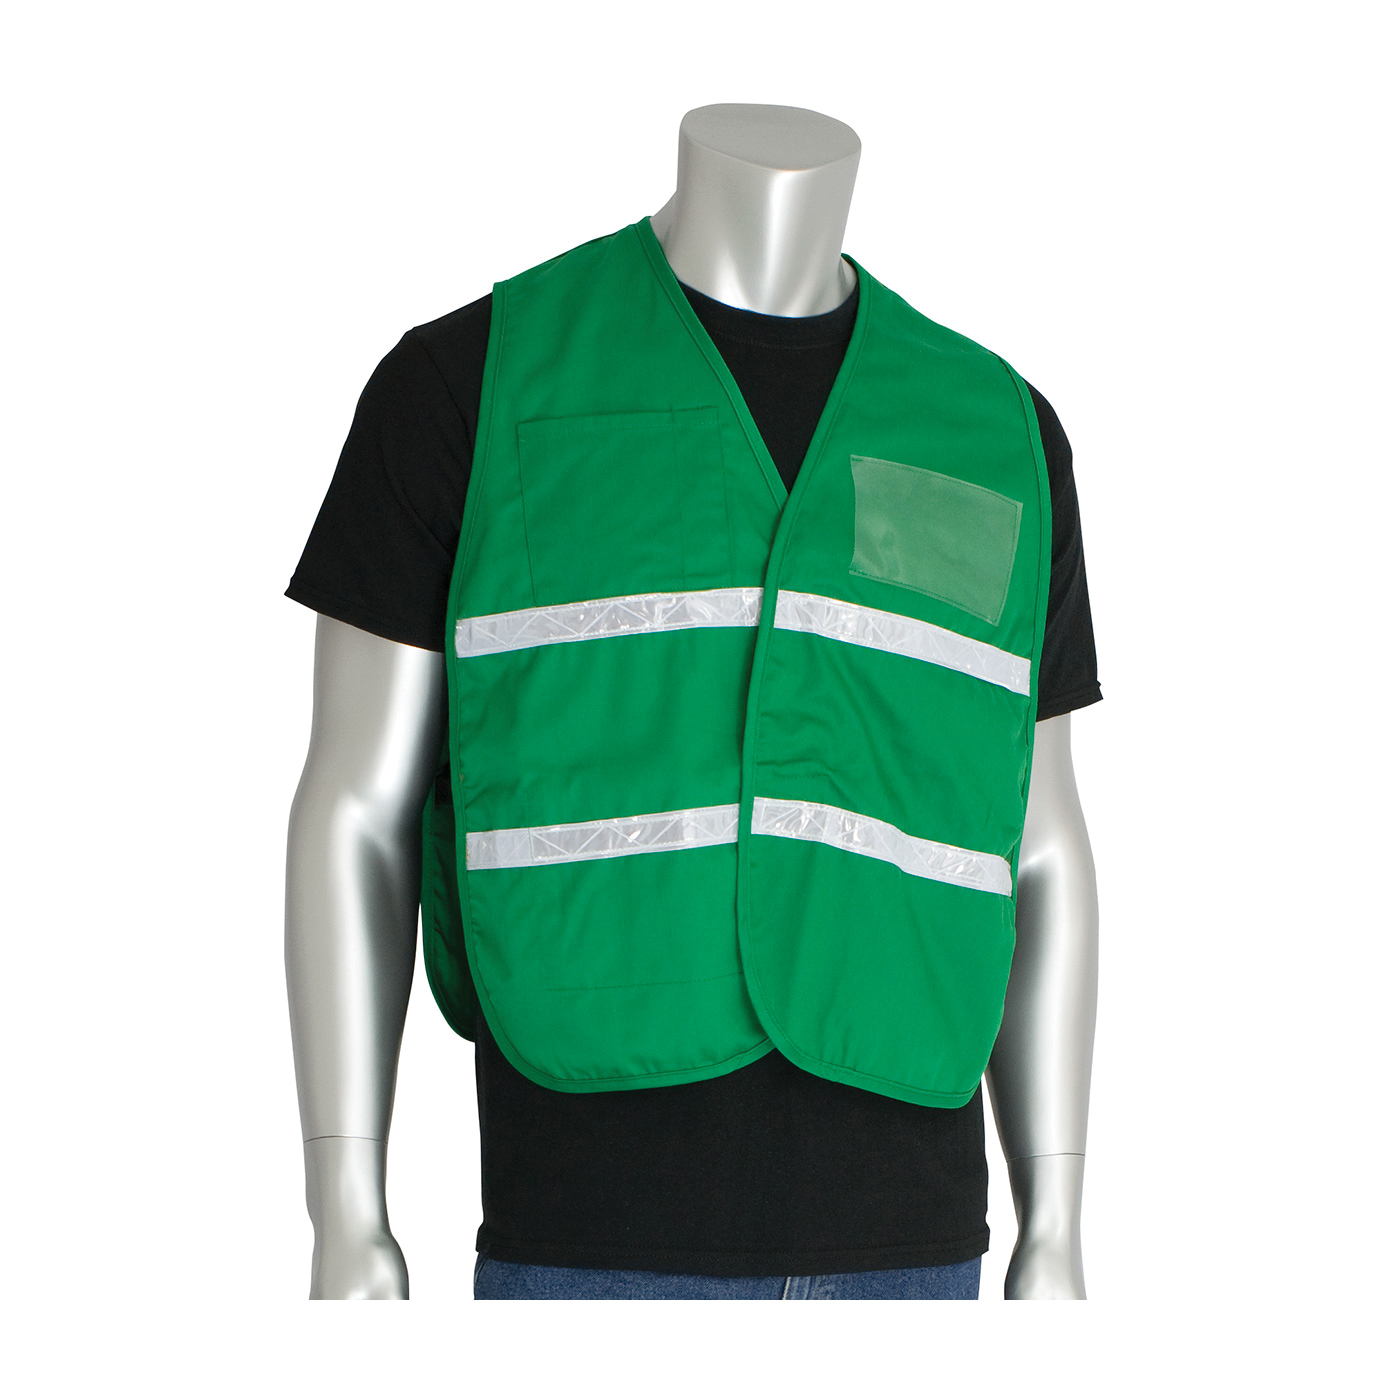 PIP® 300-1505/2X-3X Incident Command Vest, 2XL/3XL, Kelly Green, Polyester, 42.1 in Chest, Hook and Loop Closure